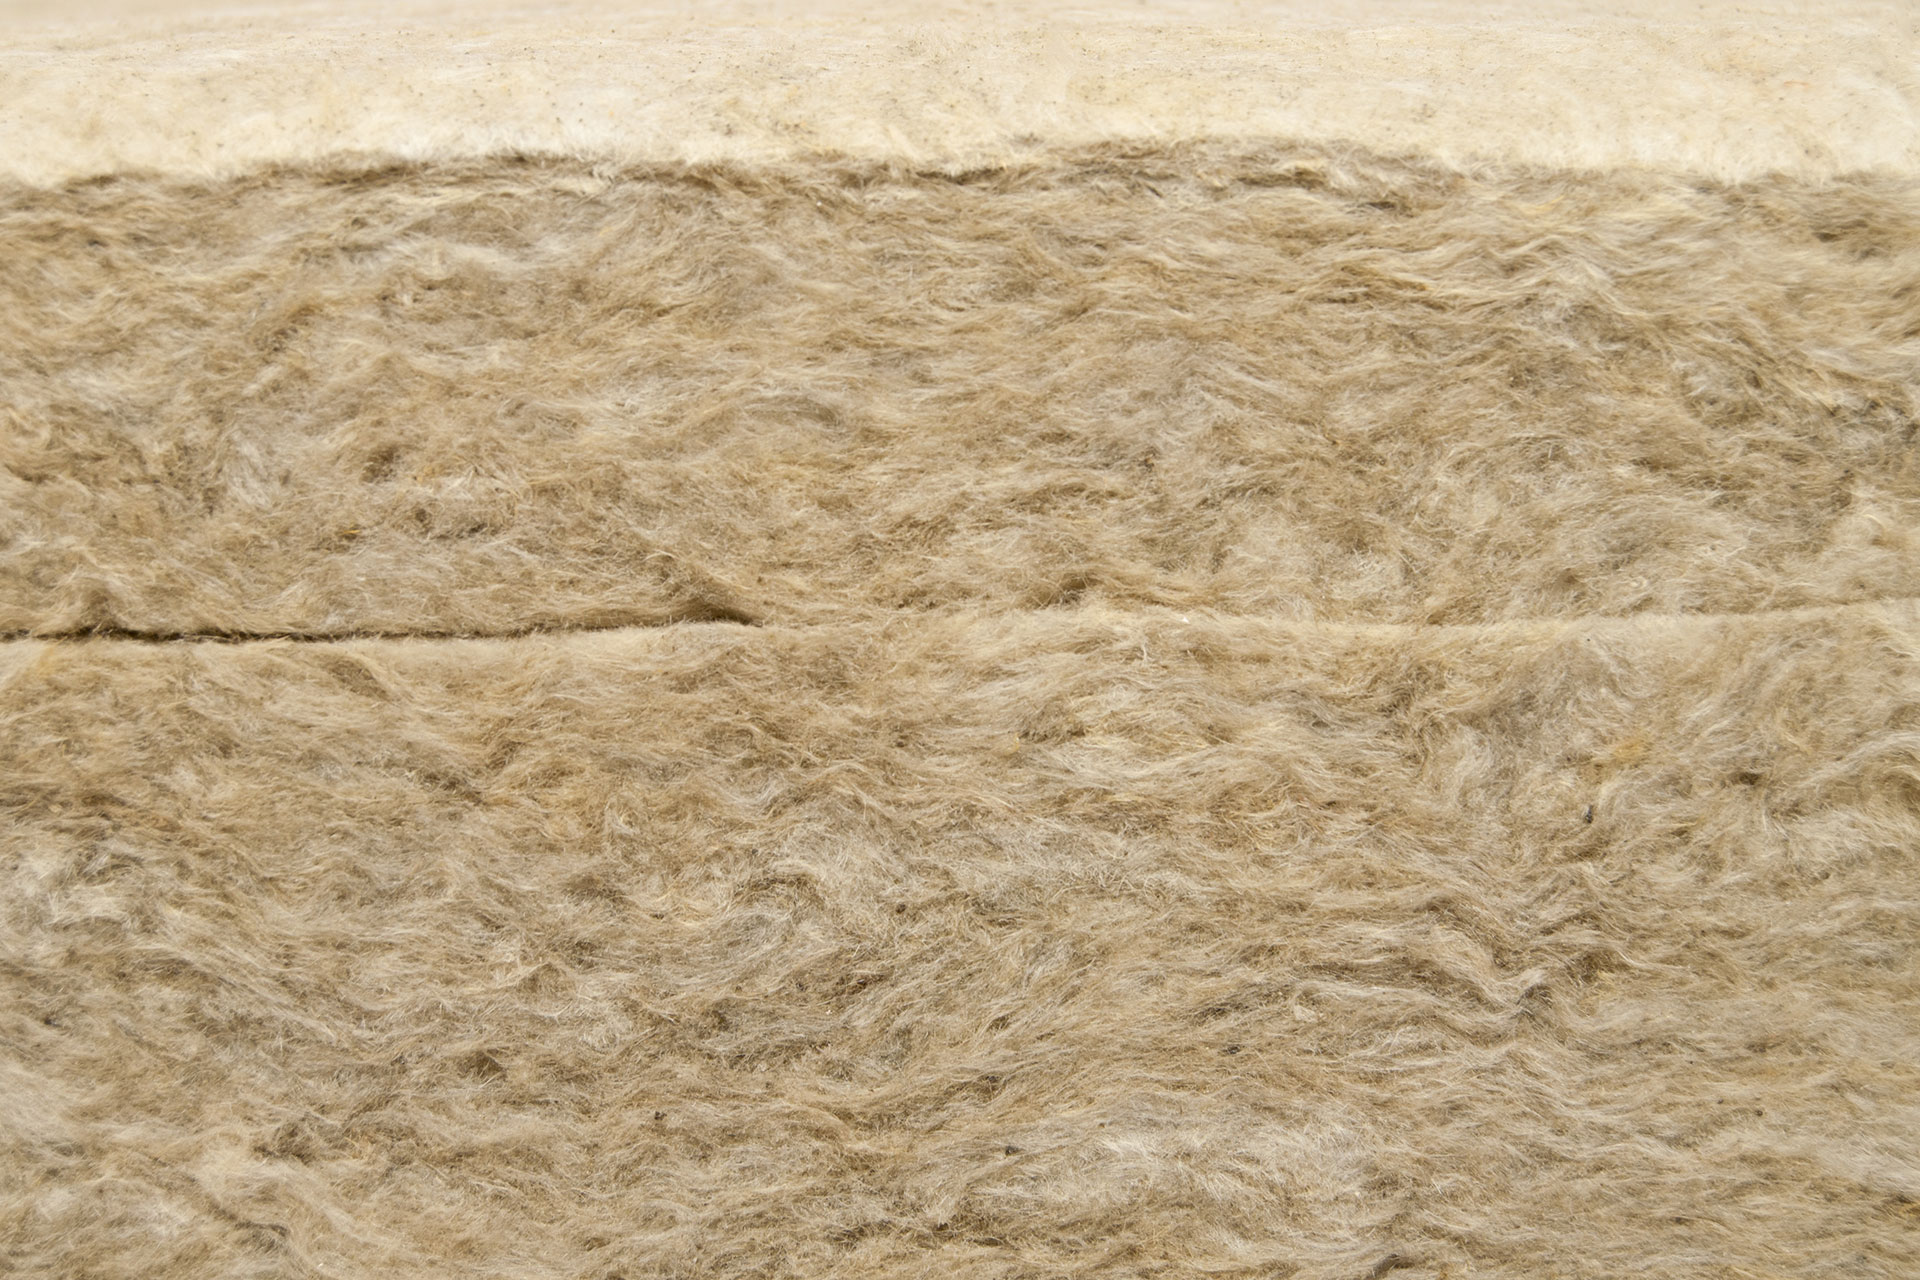 Mineral wool manufactured with magnesium carbonate